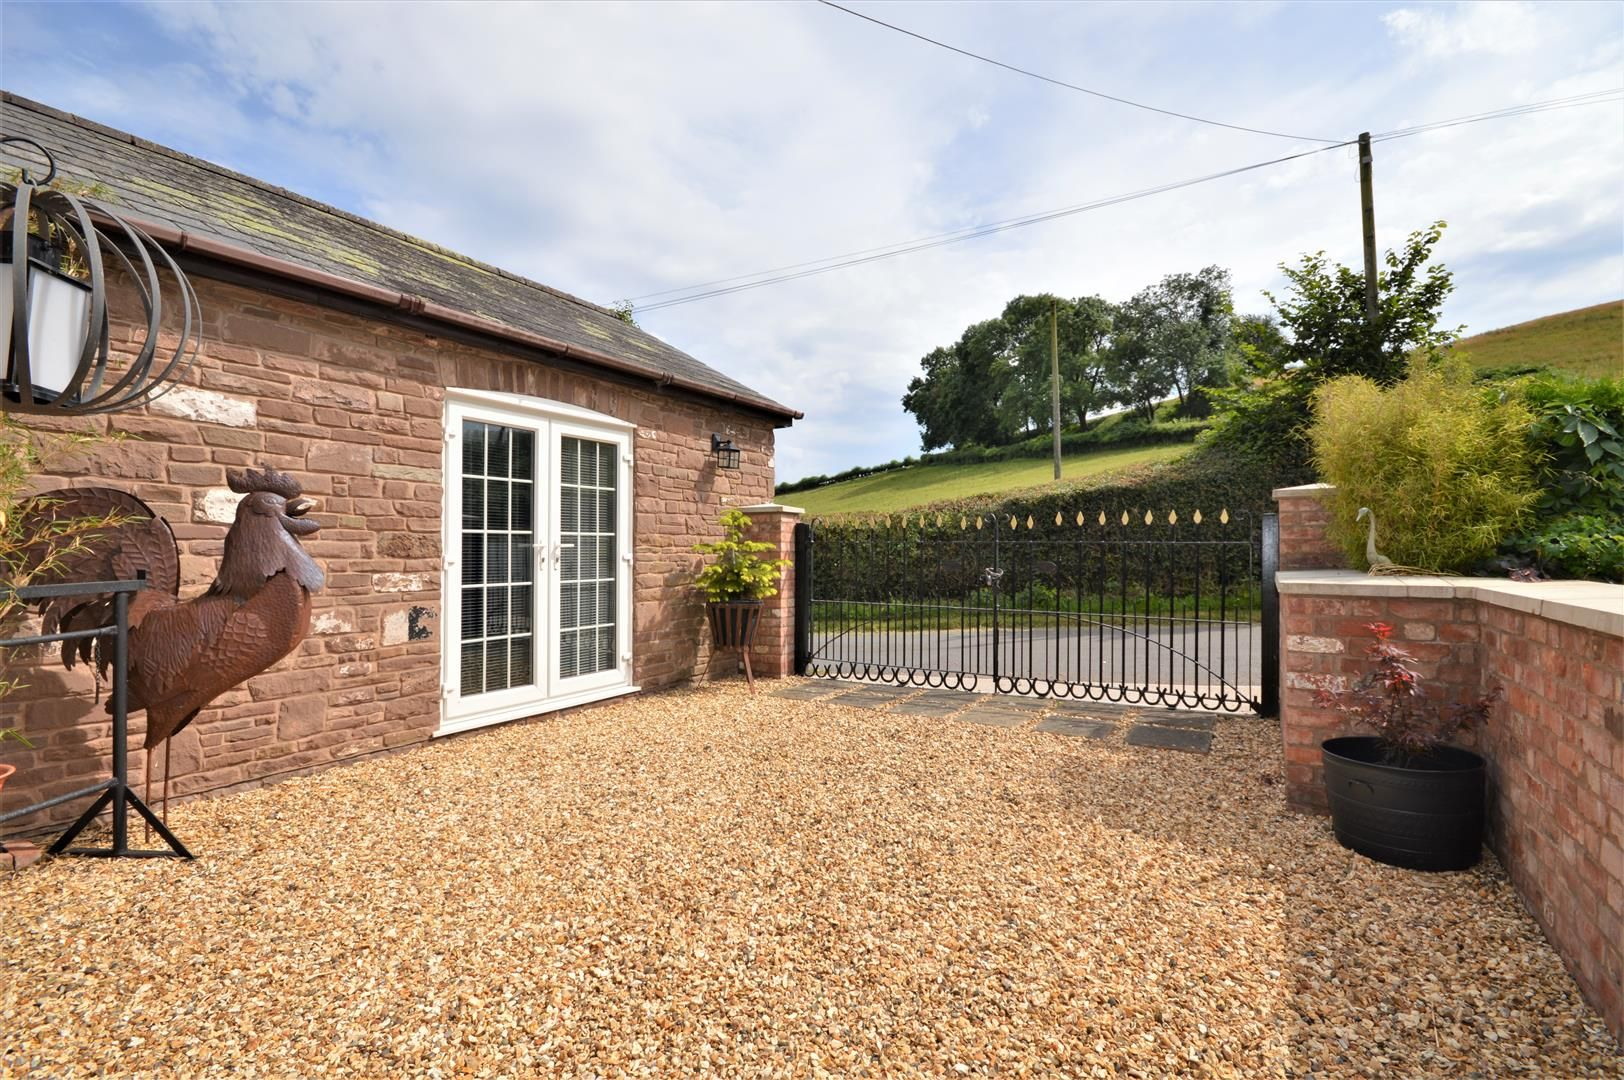 3 bed detached for sale in Orcop 20